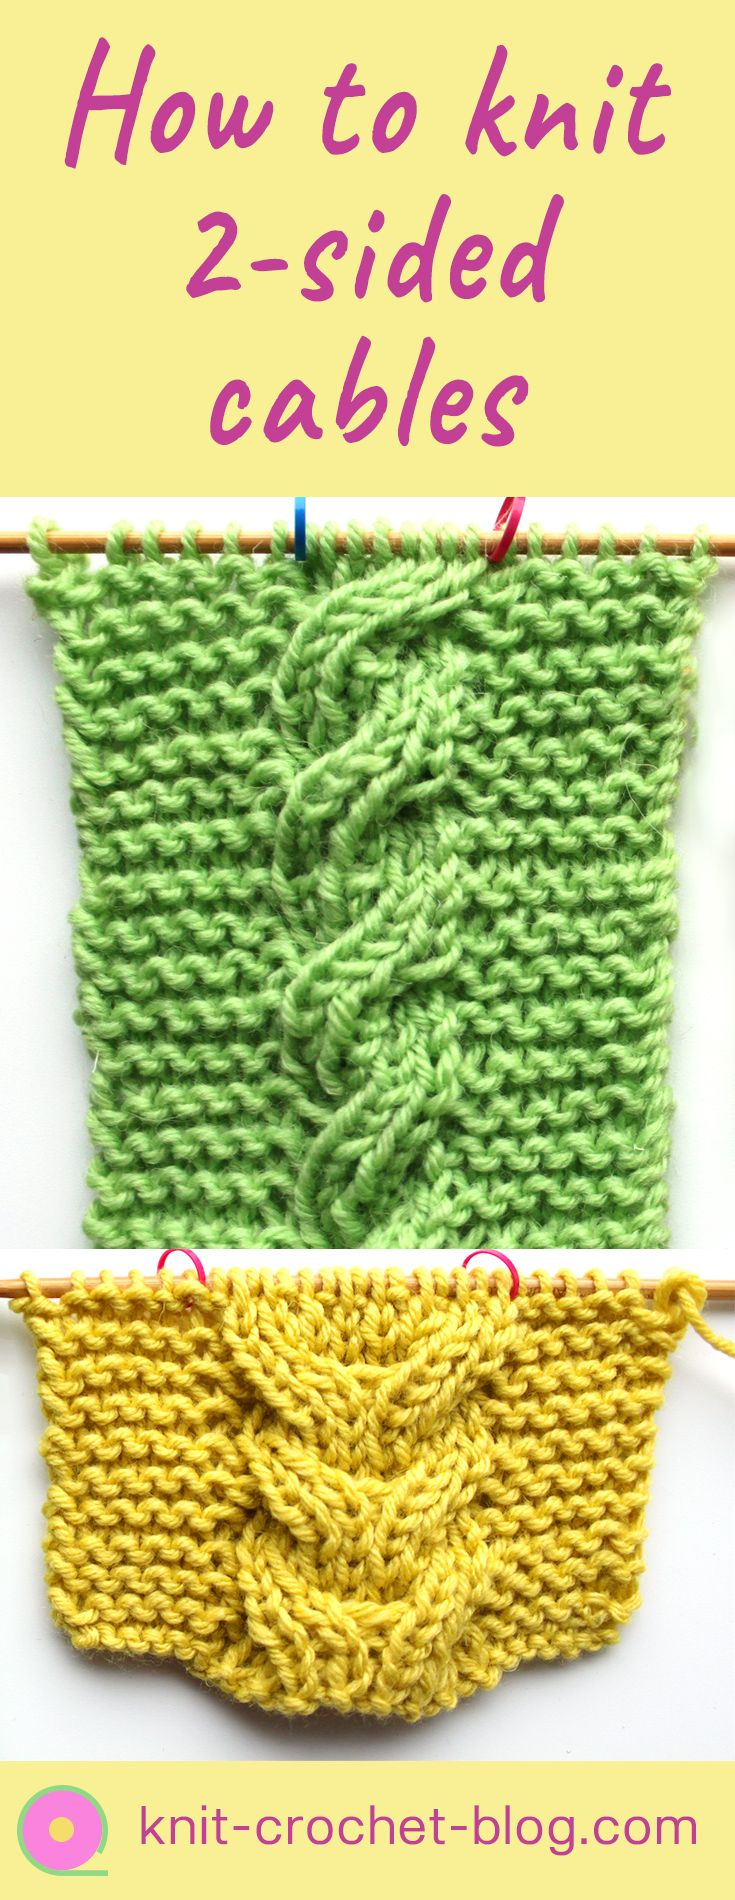 How to knit two-sided cables. Step by step videotutorial. Normal cables don't look good on the reverse side, so knit ehm double sided for items like scarves and blankets.